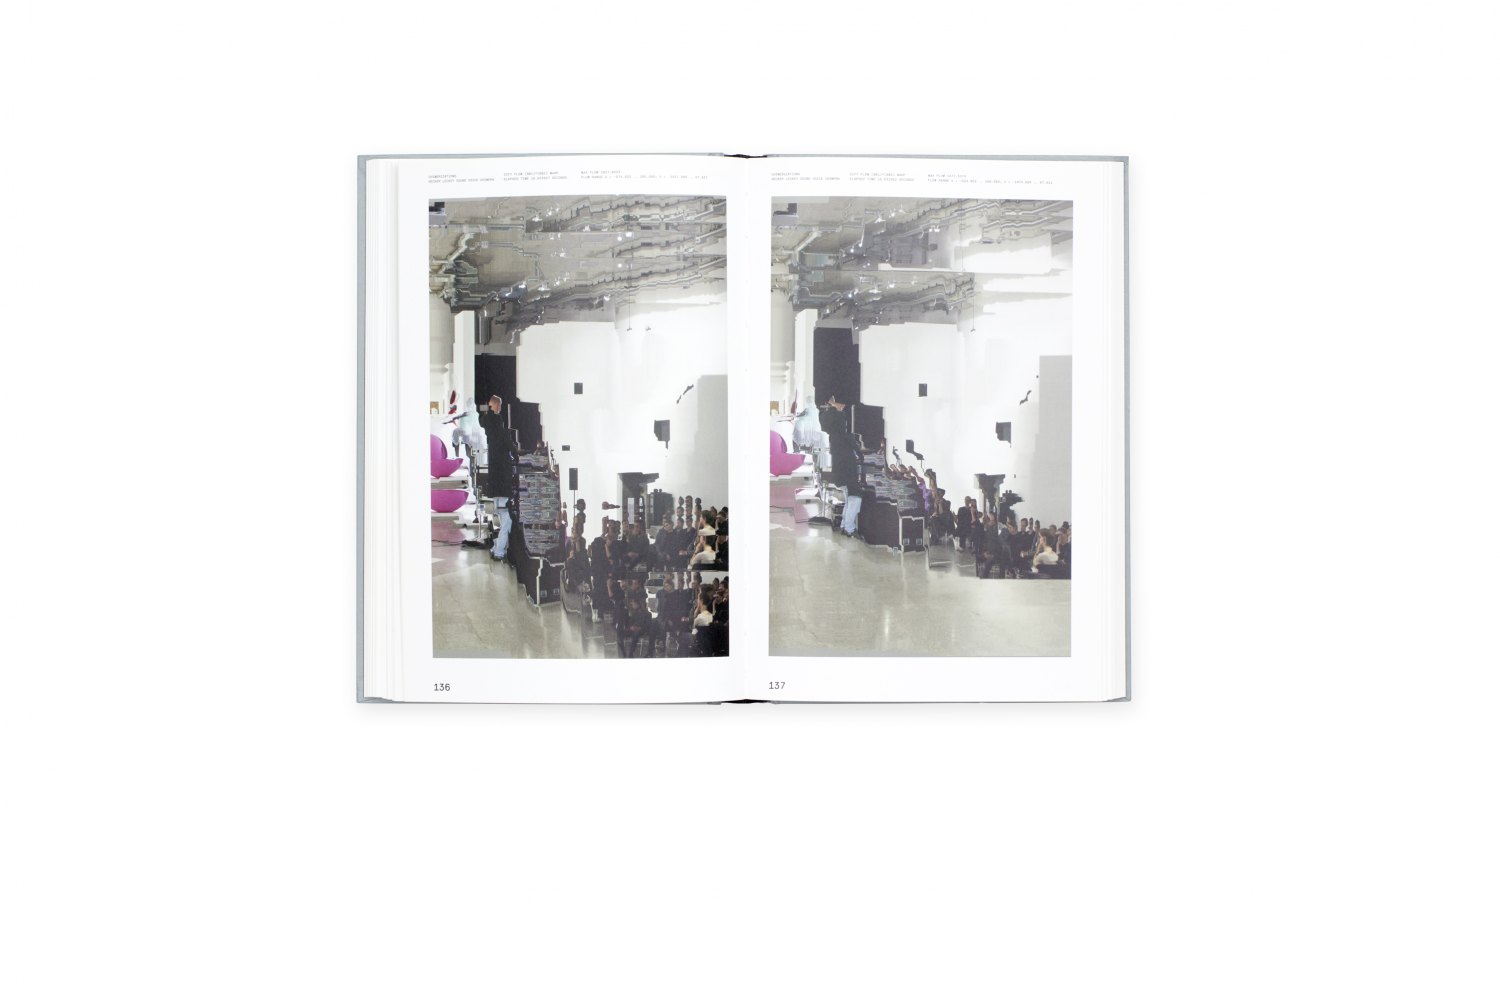 Florian Hecker,Chimerizations introd. by Catherine Wood, New York 2013, 304 p.  ISBN 978-0-98513-642-0